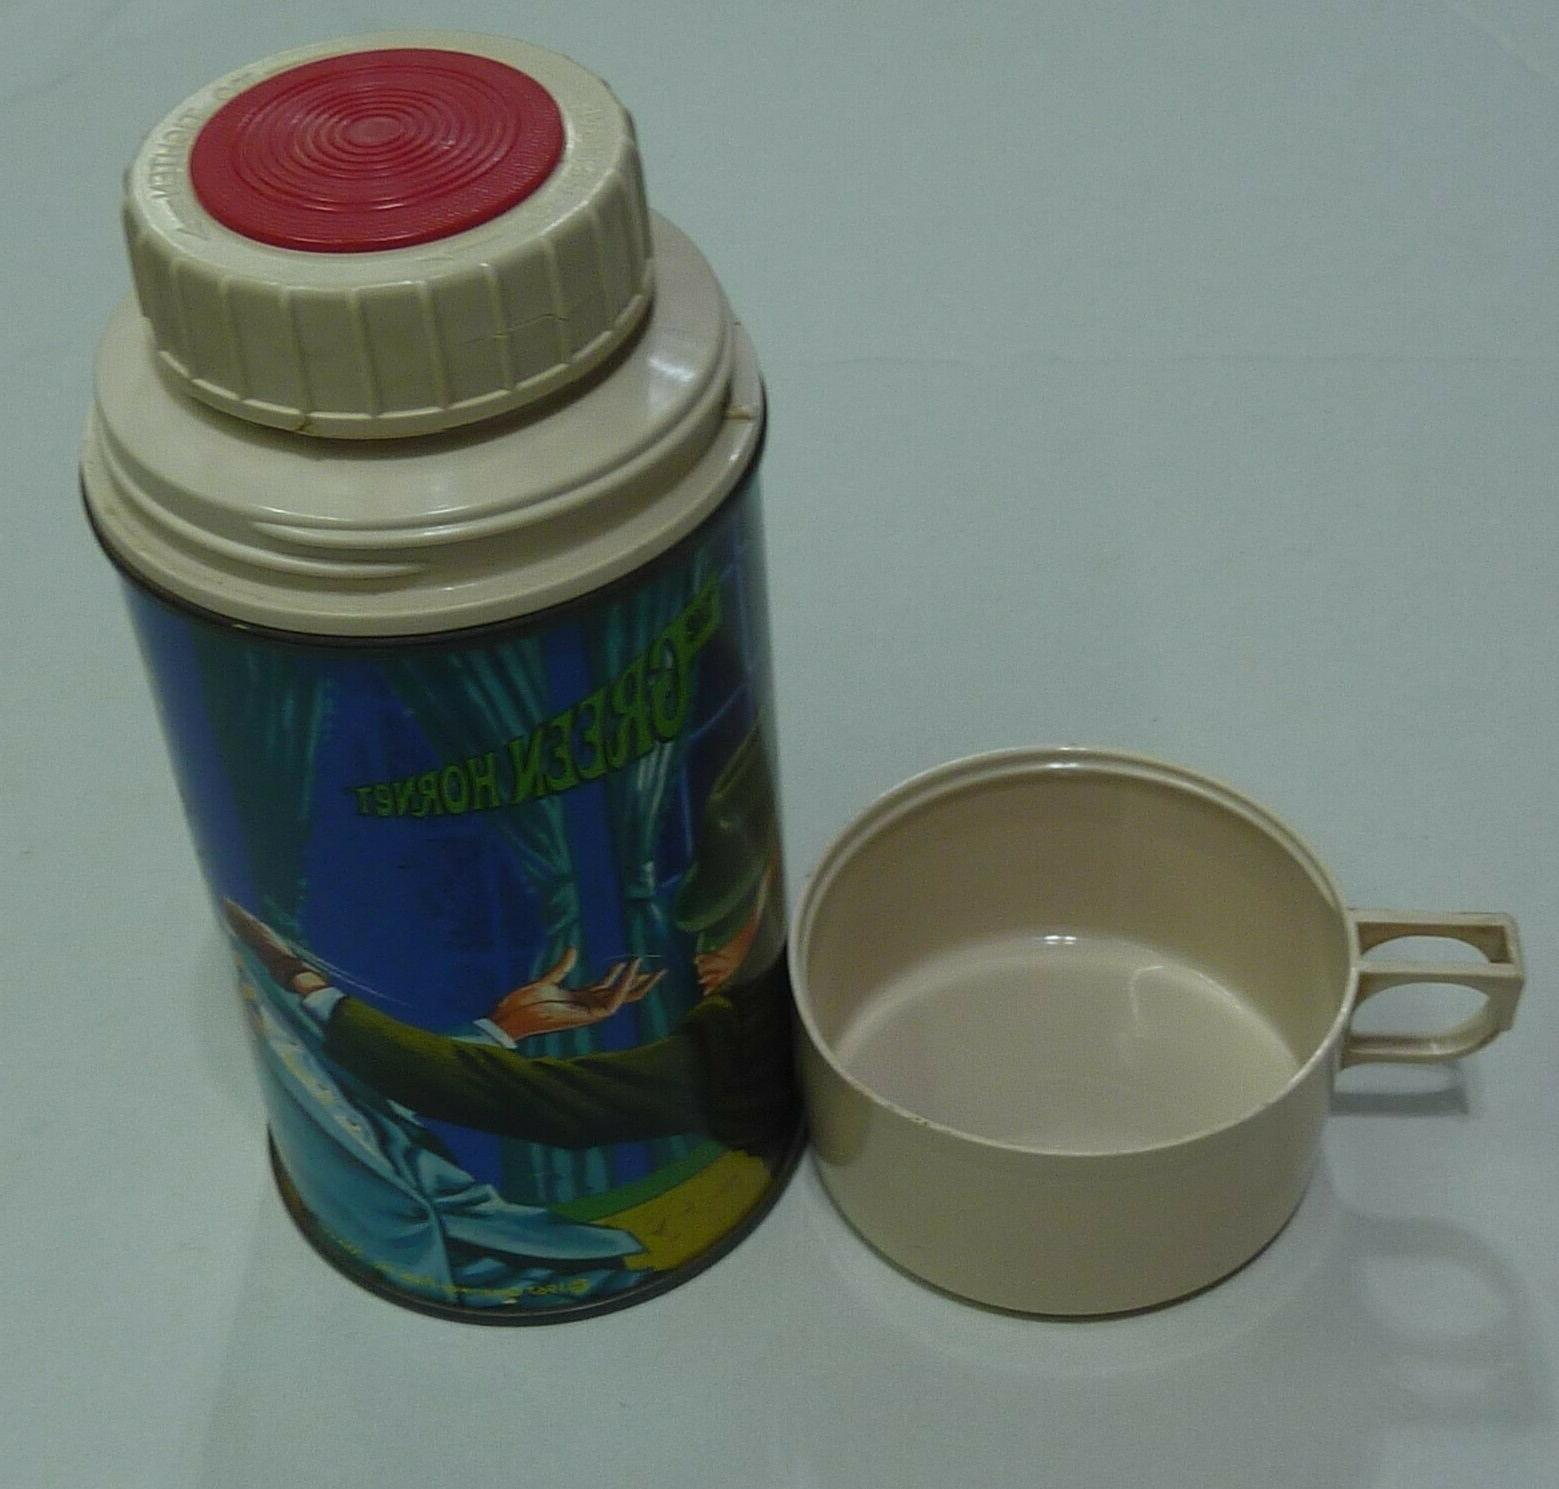 HORNET METAL LUNCH THERMOS CONDITION